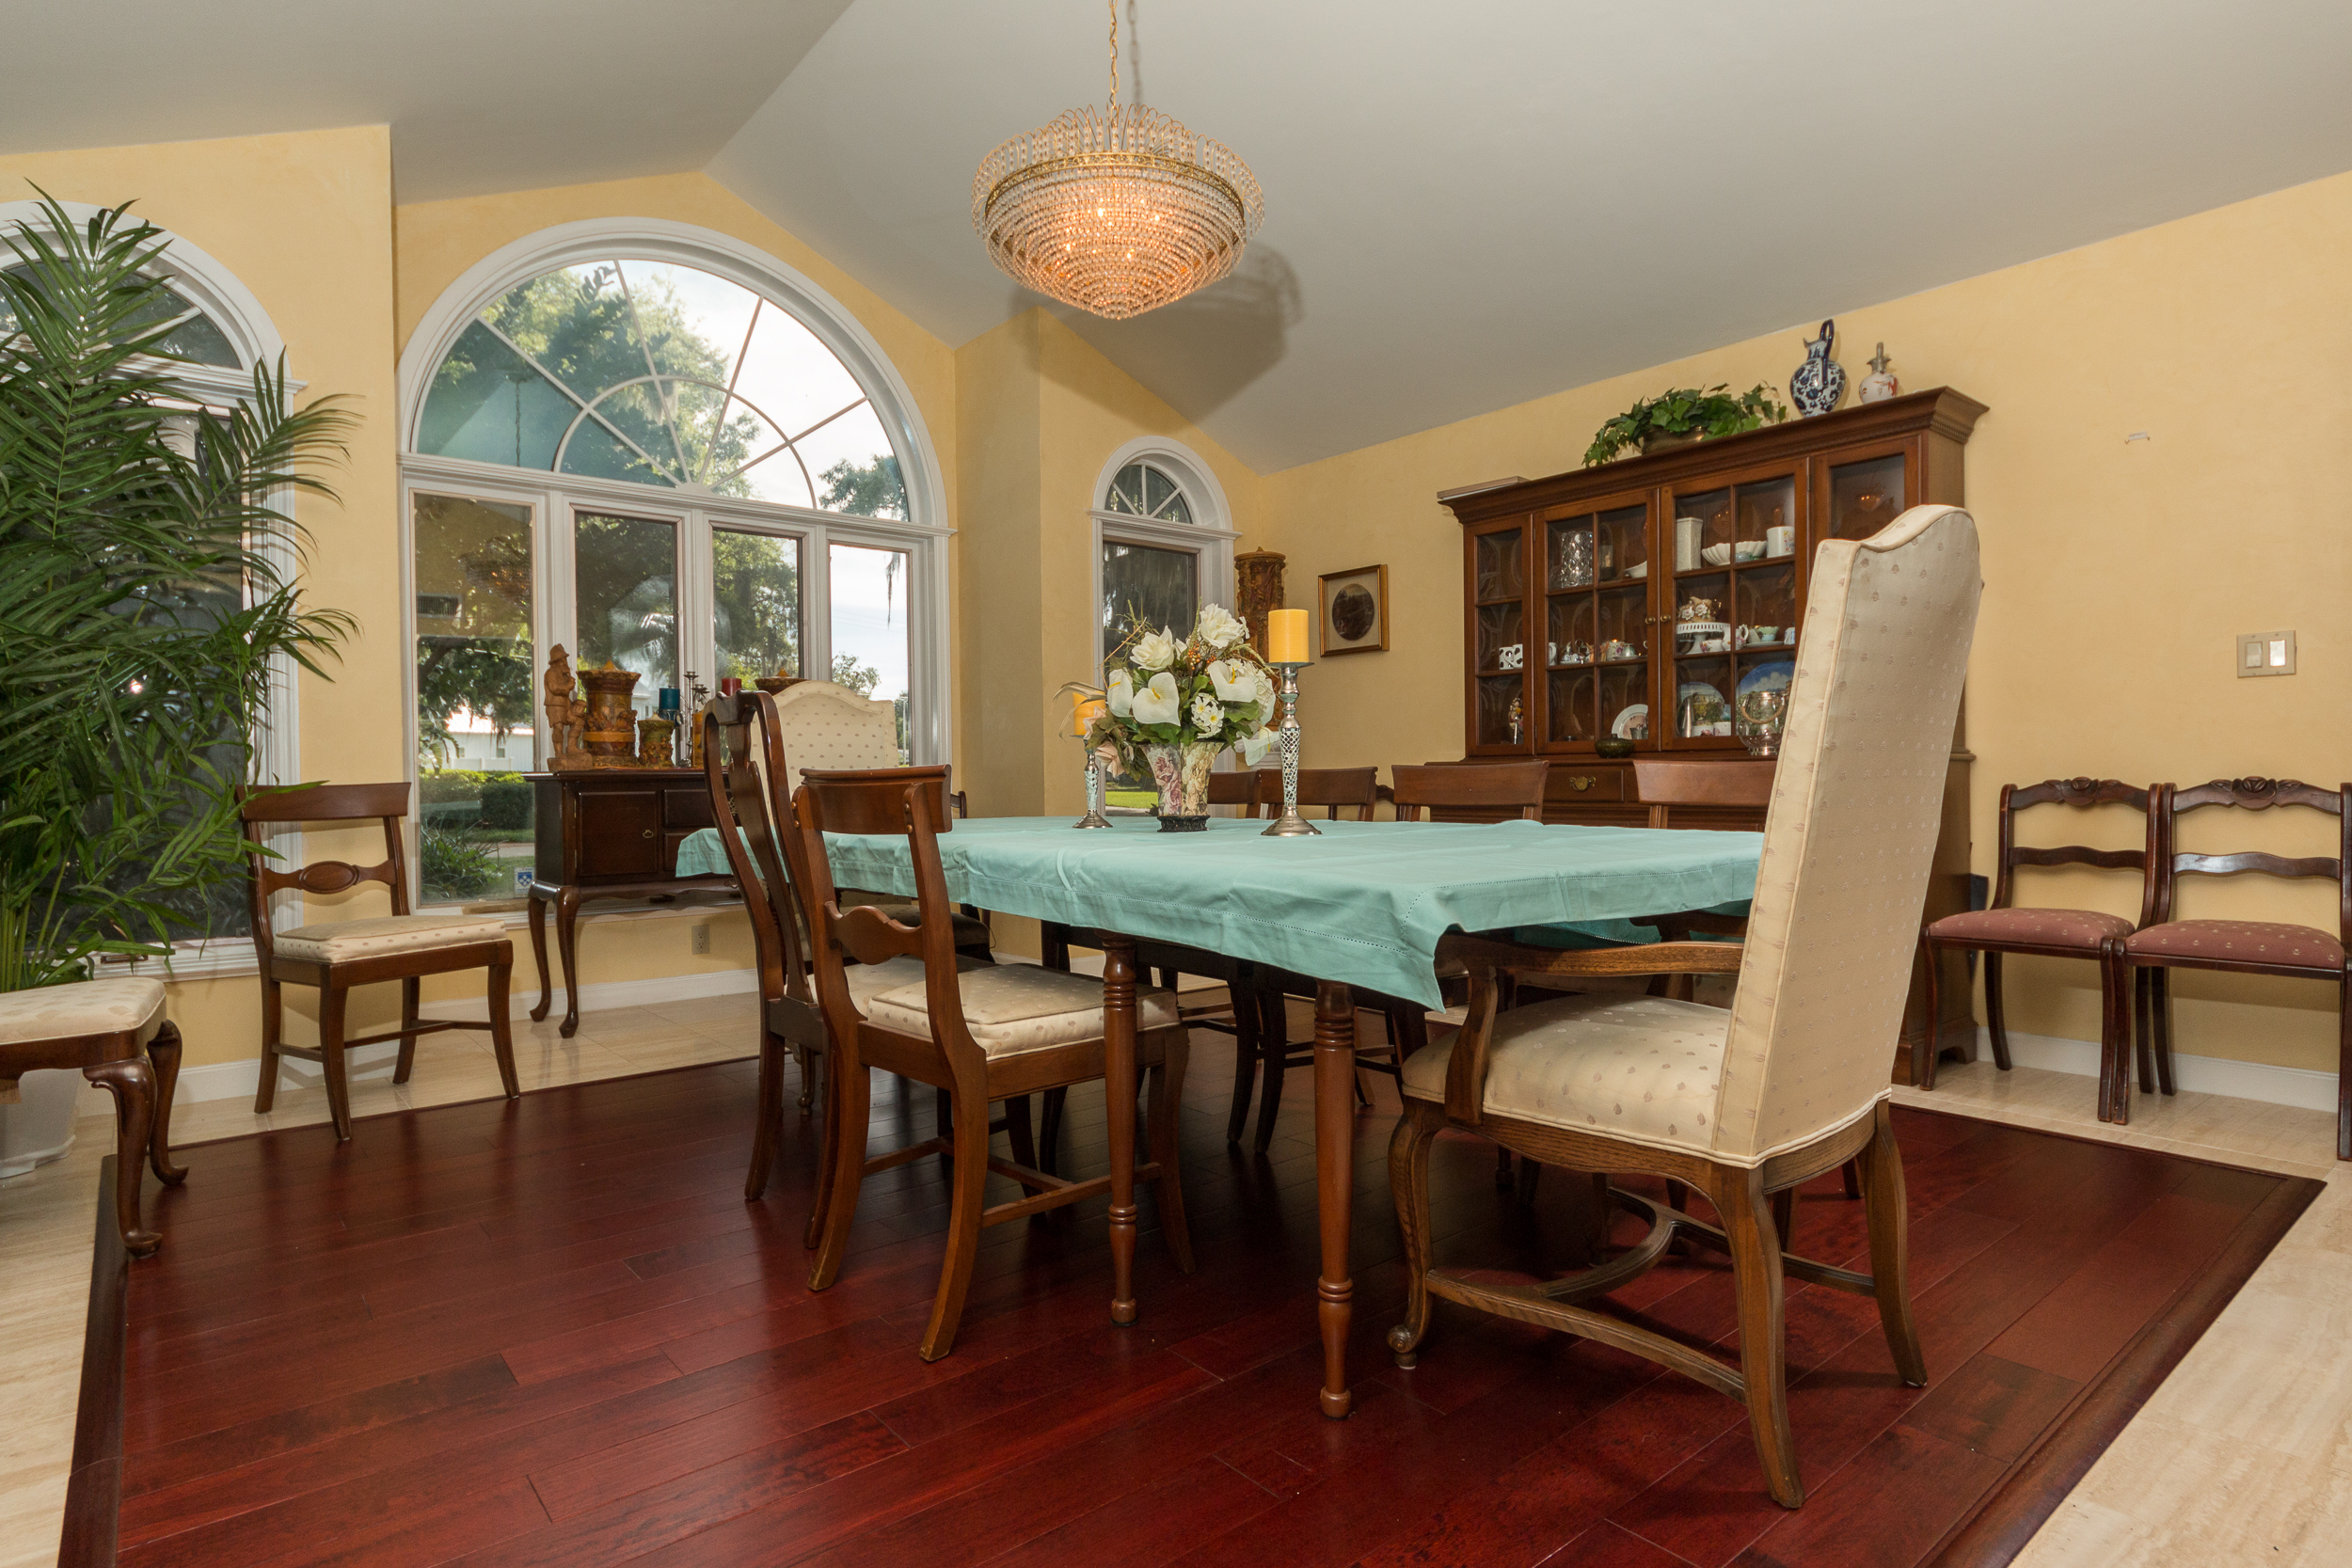 Brazilian Cherry Rouge Flooring in Dining Room